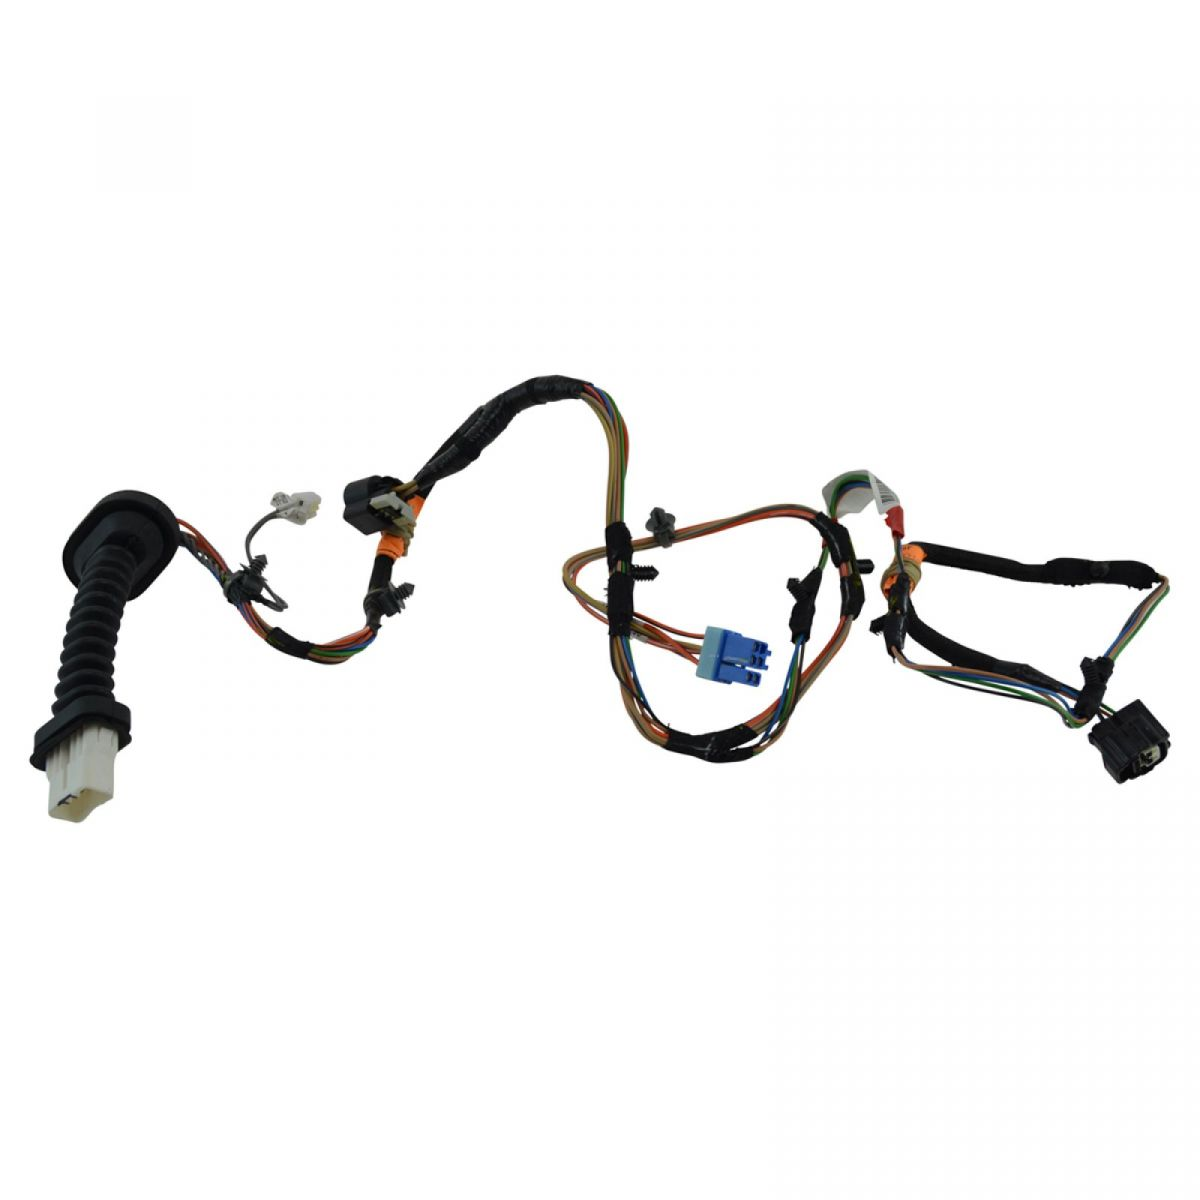 AM 3783557712 oem 56051393ac rear door wiring harness for 06 09 dodge ram mega dodge ram rear door wiring harness at readyjetset.co